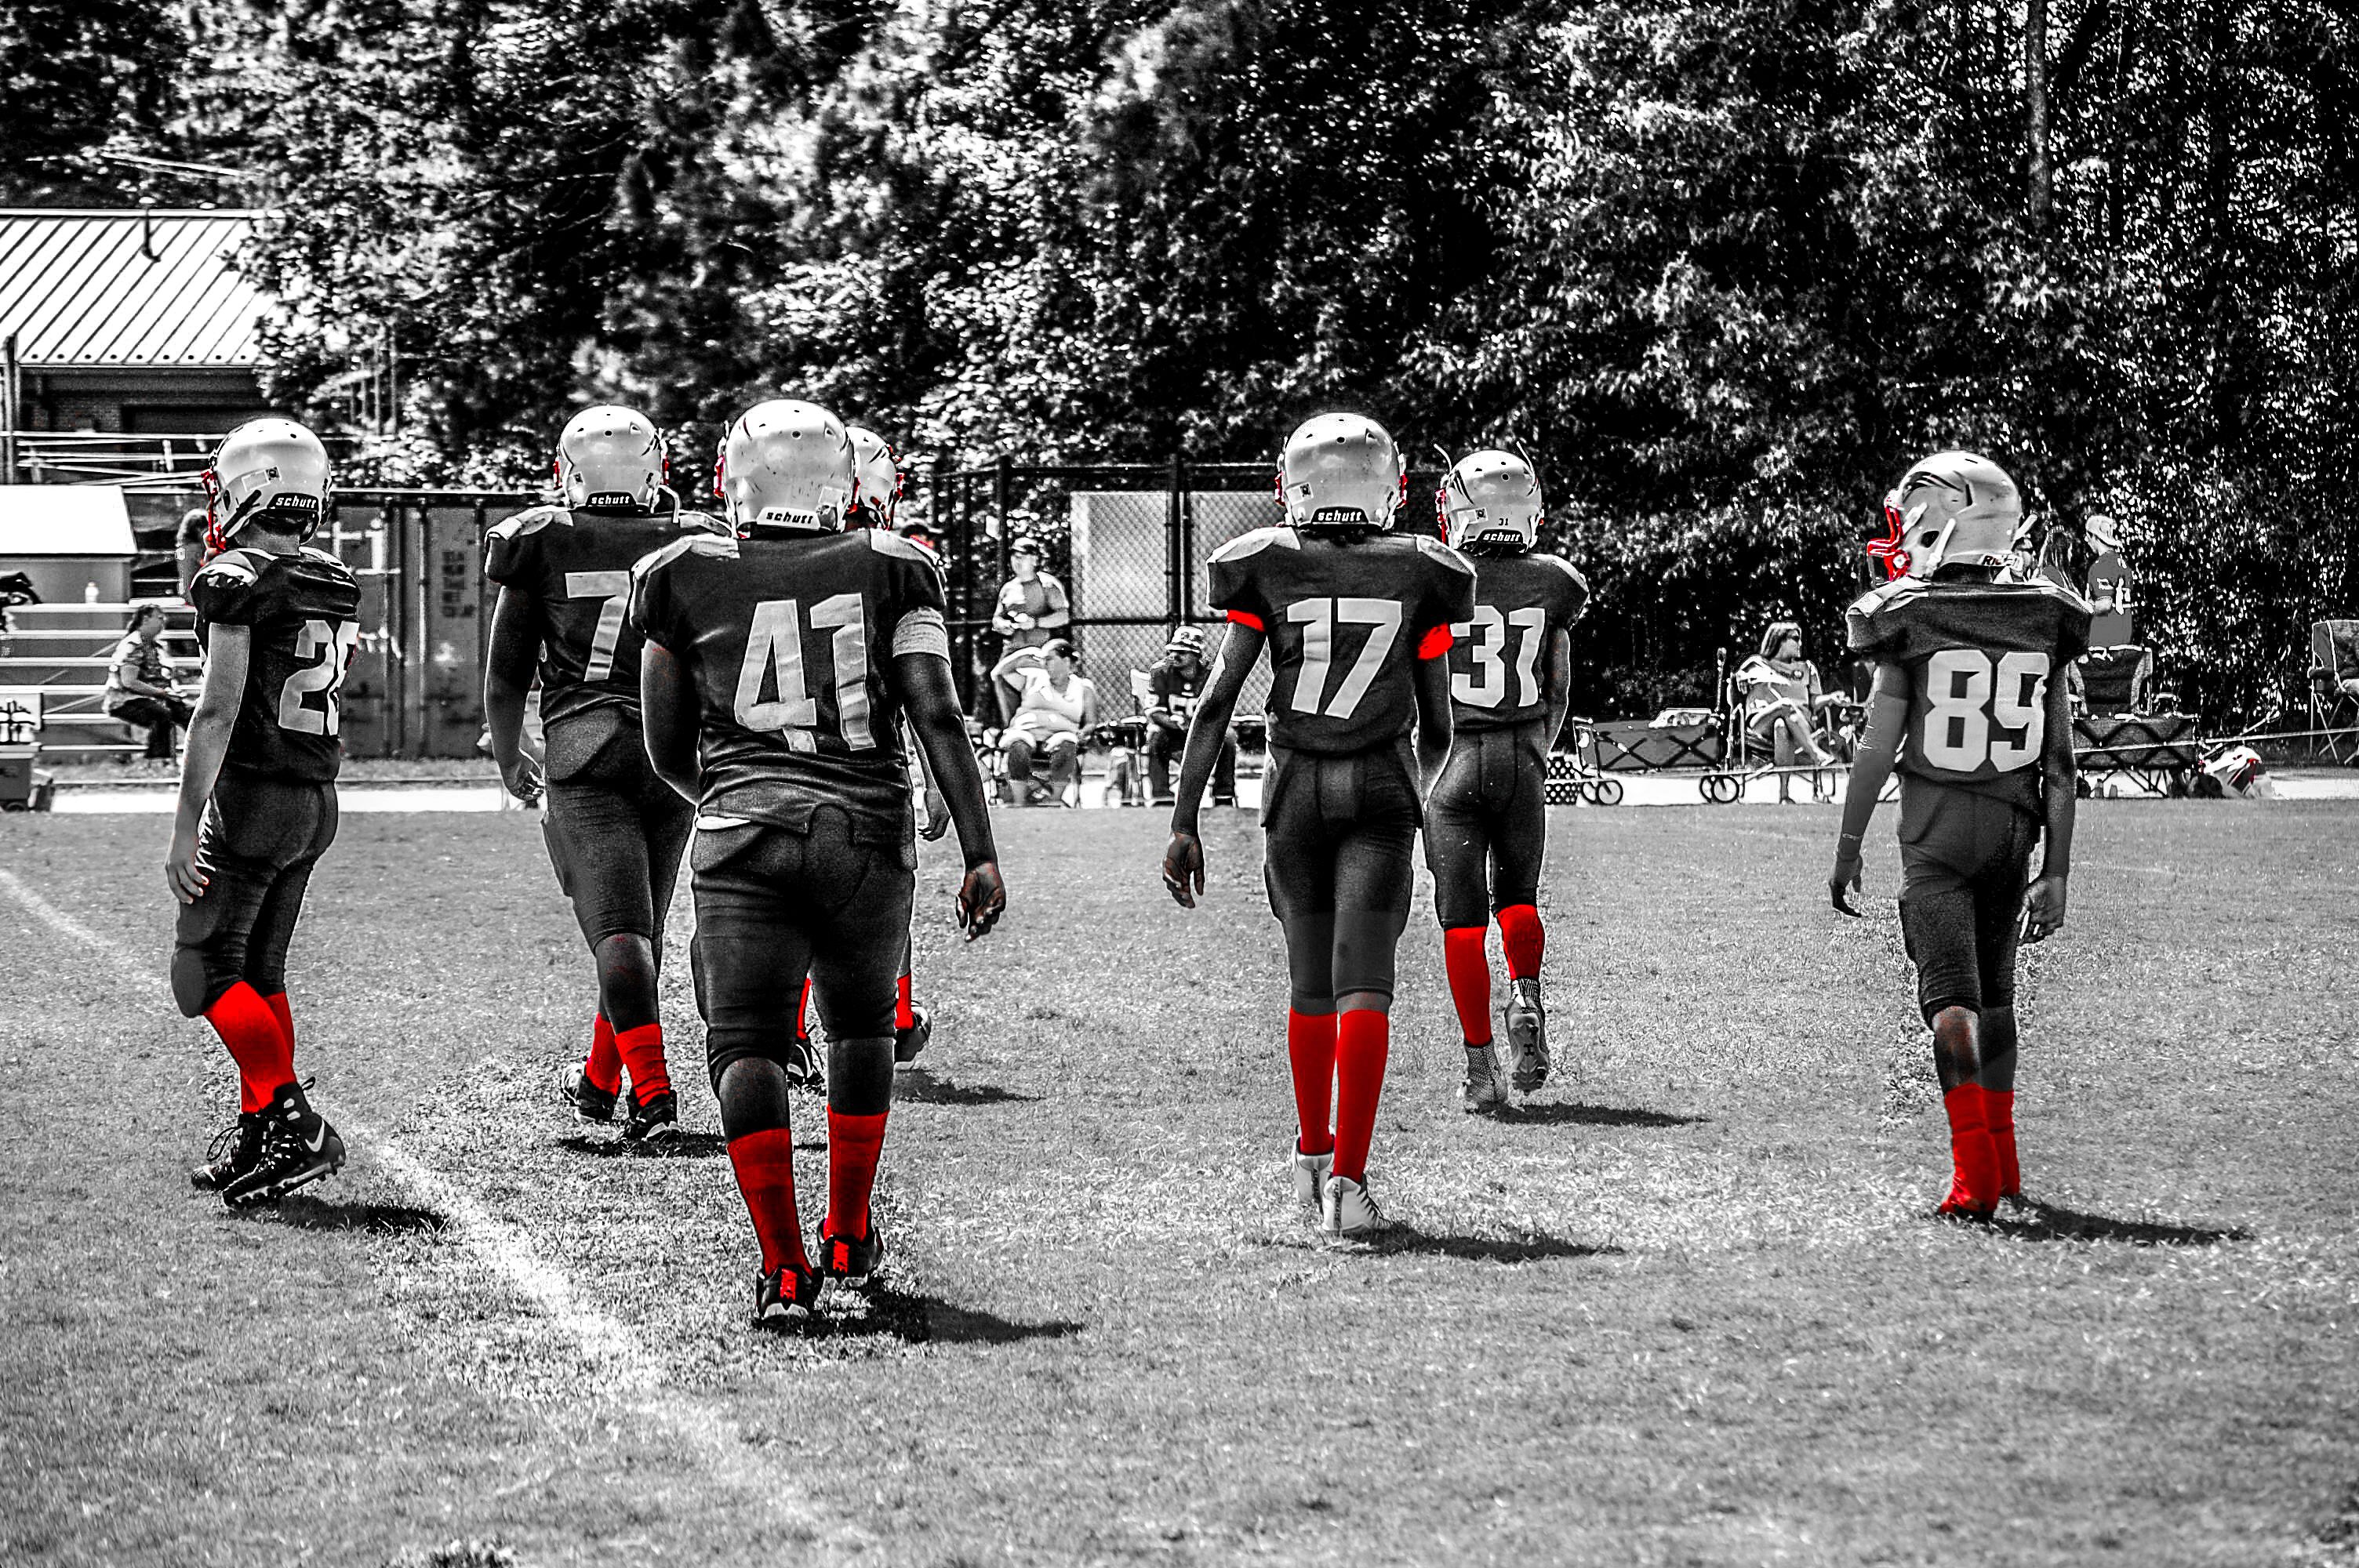 Photoshop Photo Edit - Youth Football